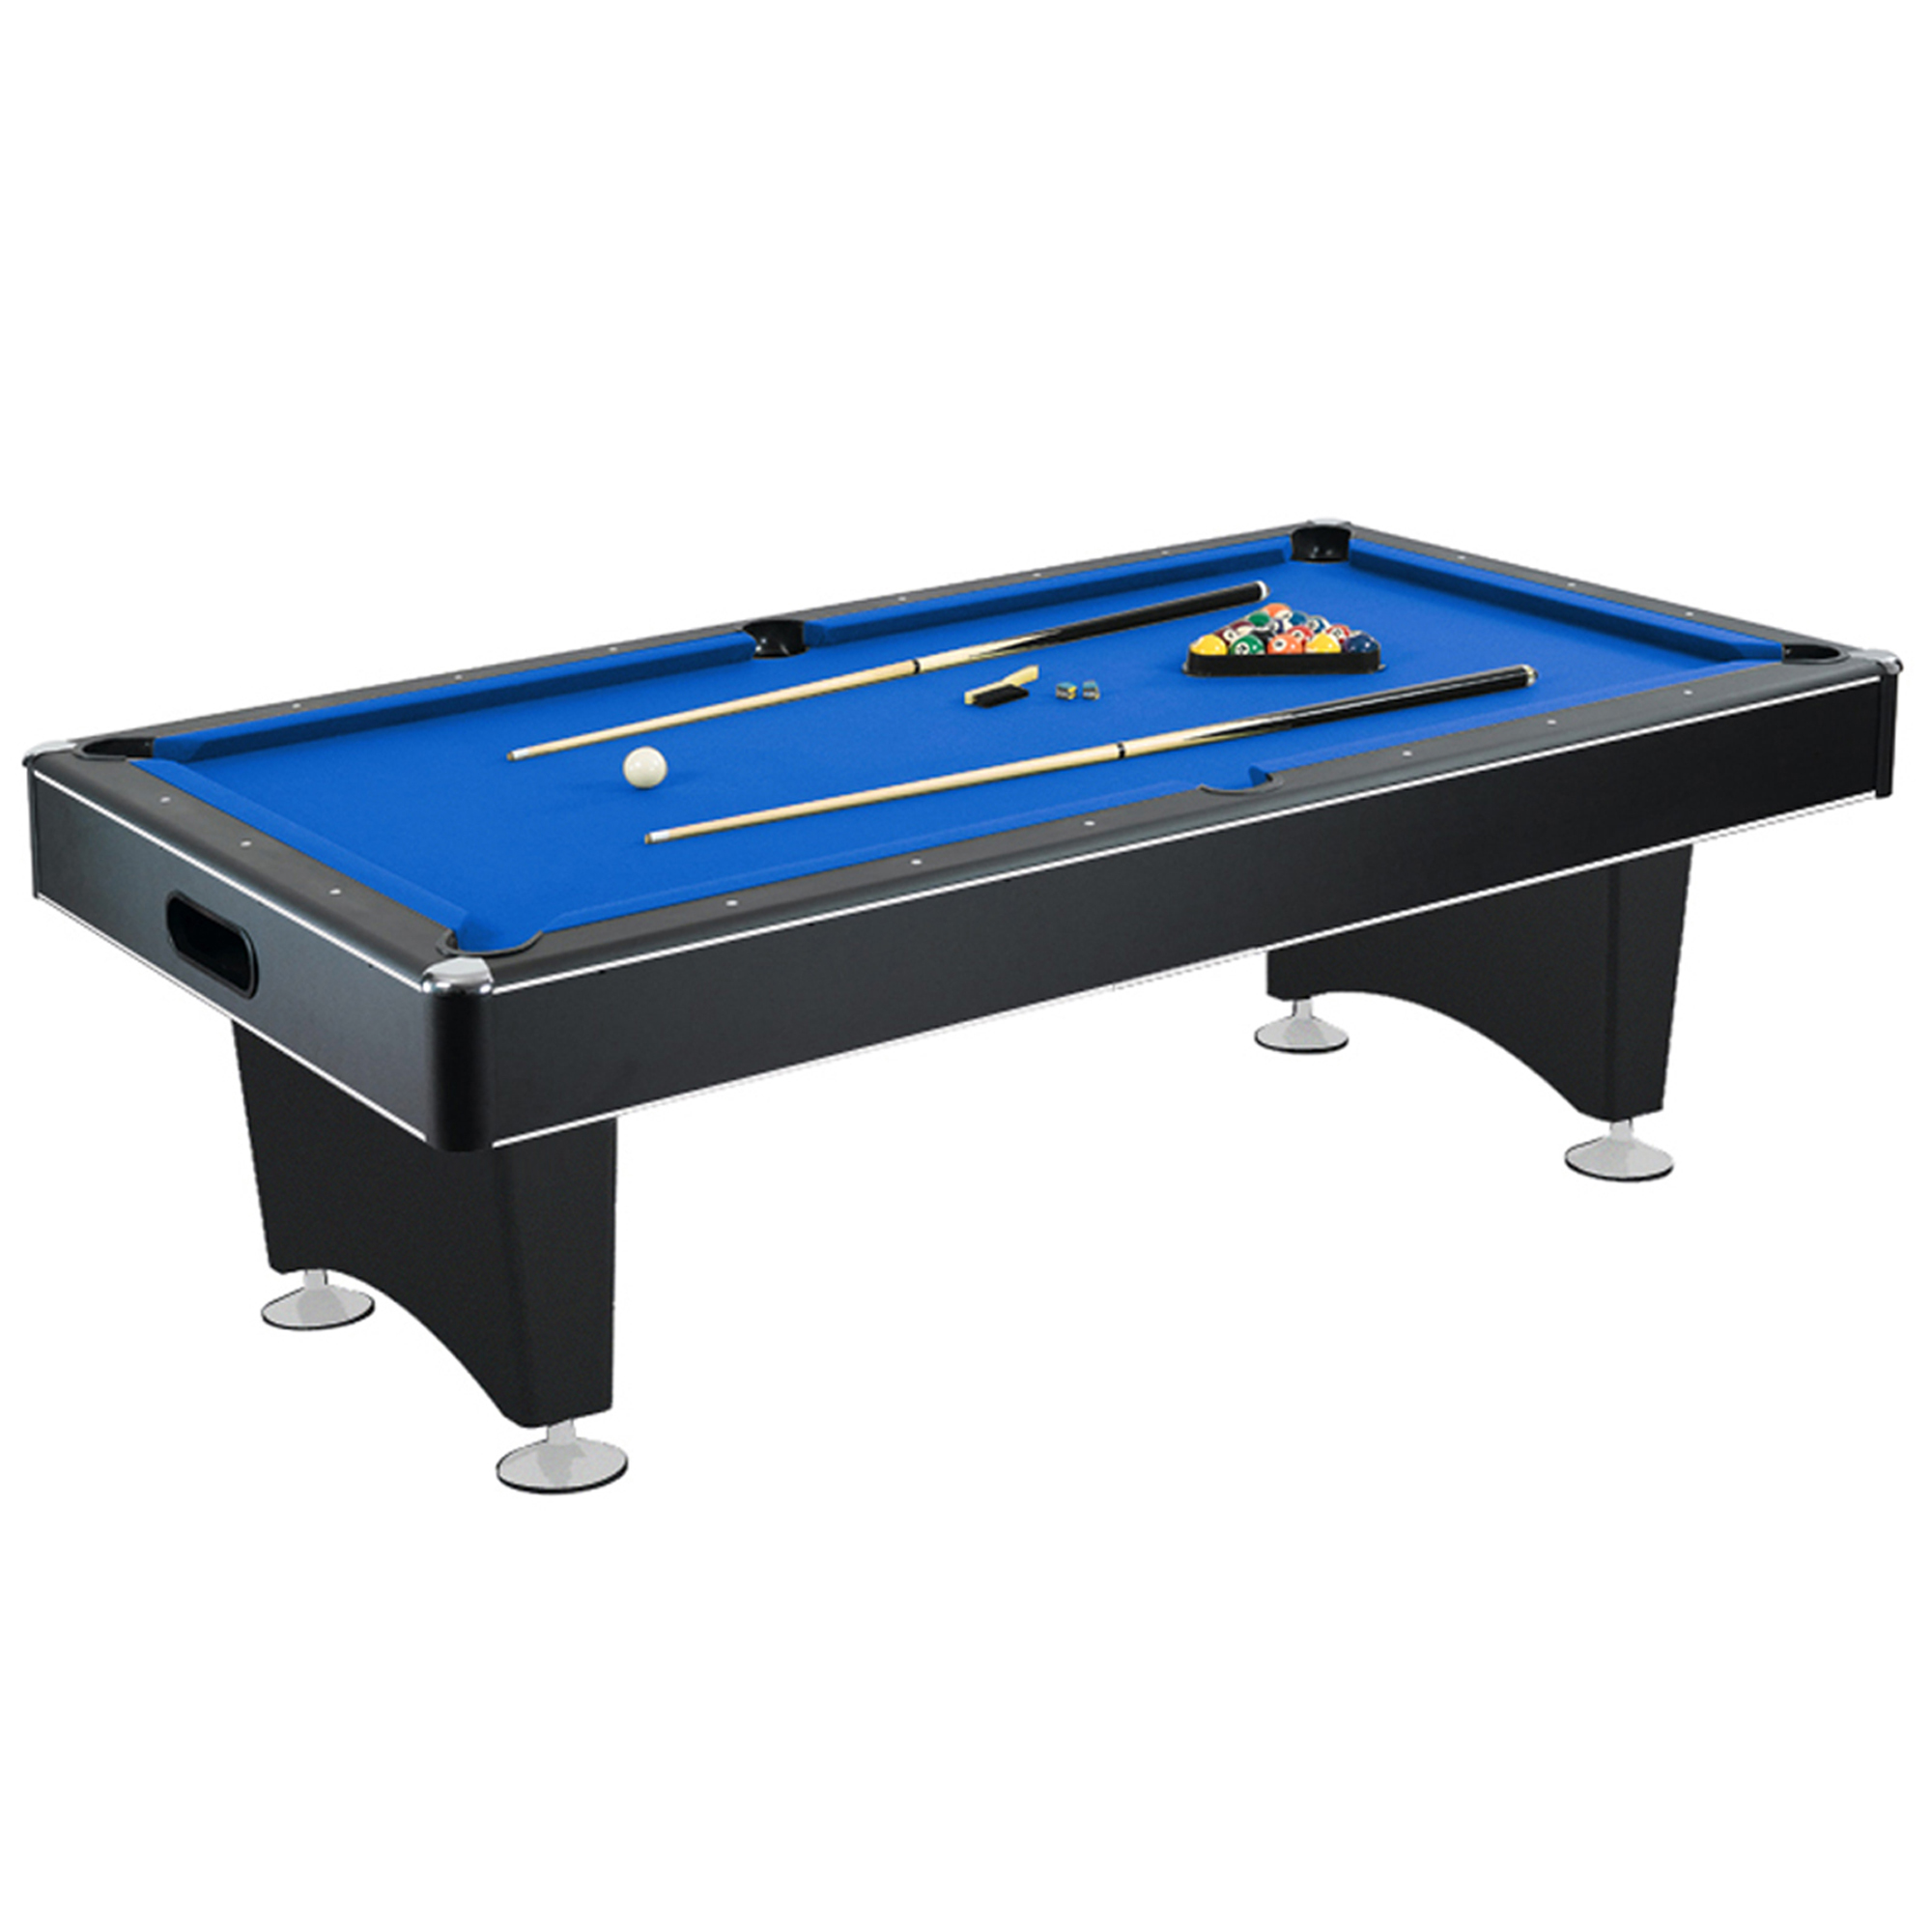 Exceptionnel Hustler 7 Foot Pool Table With Blue Felt, Internal Ball Return System, Easy